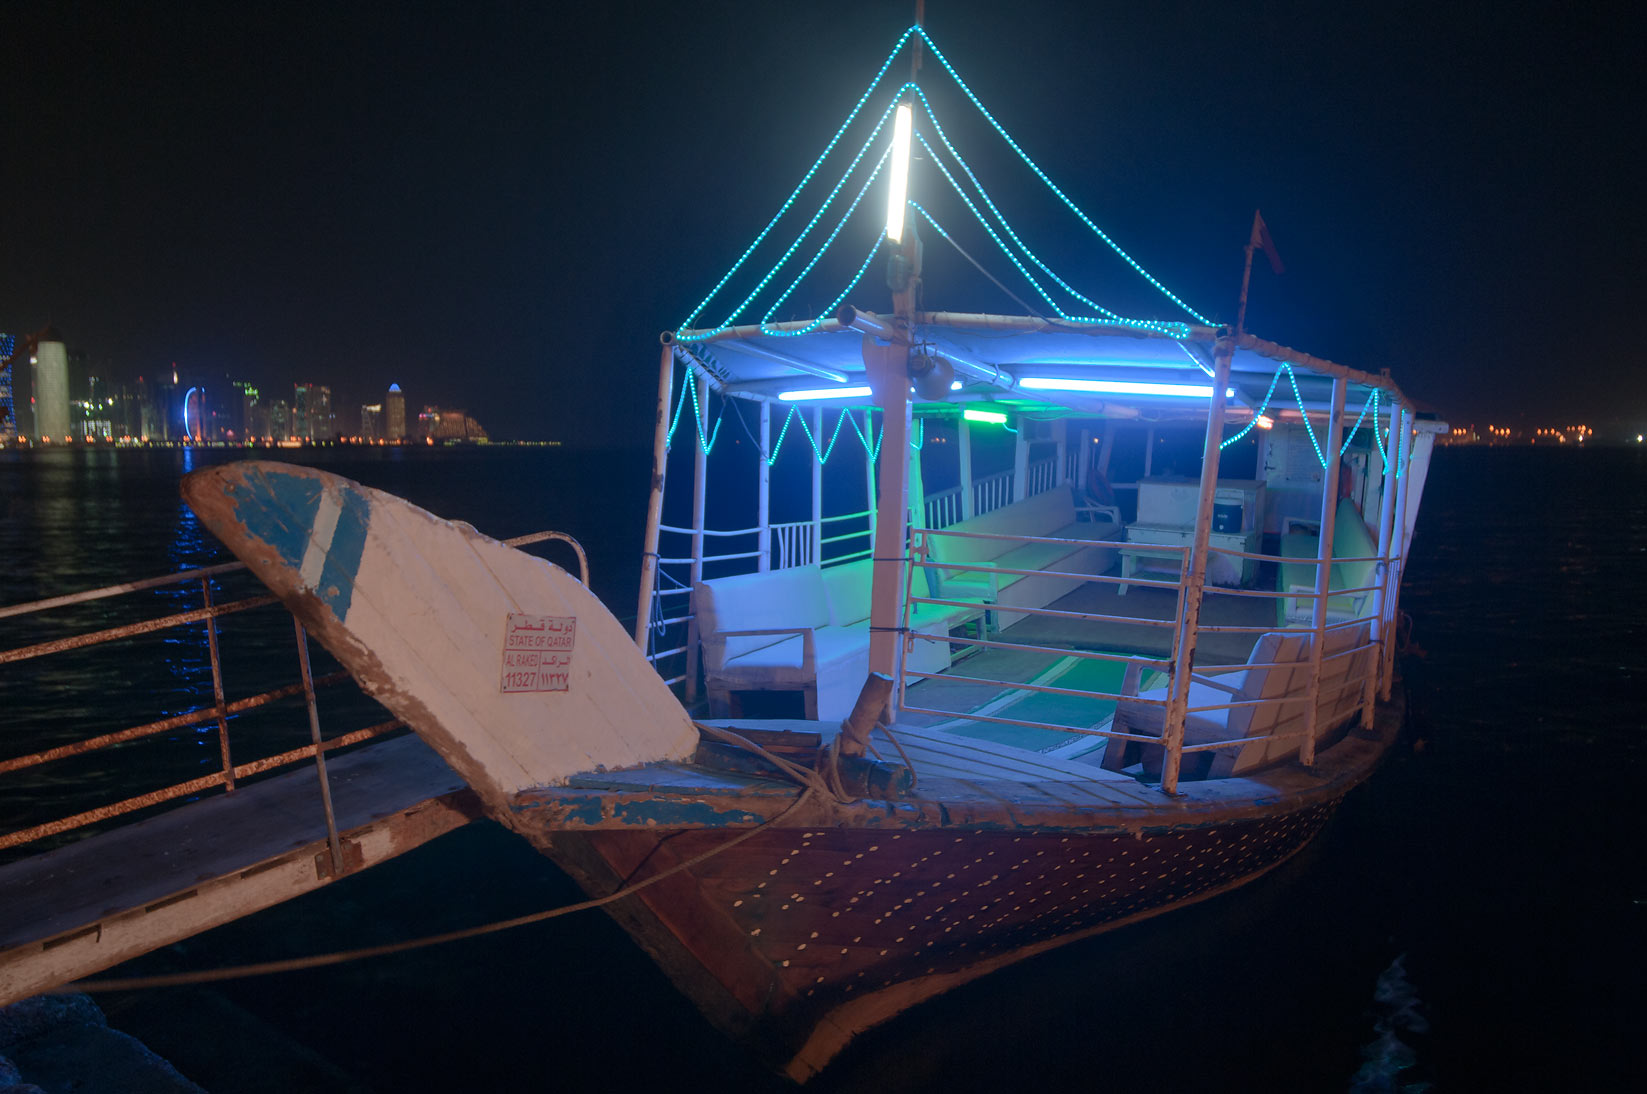 Illuminated dhow boat docked at Corniche. Doha, Qatar